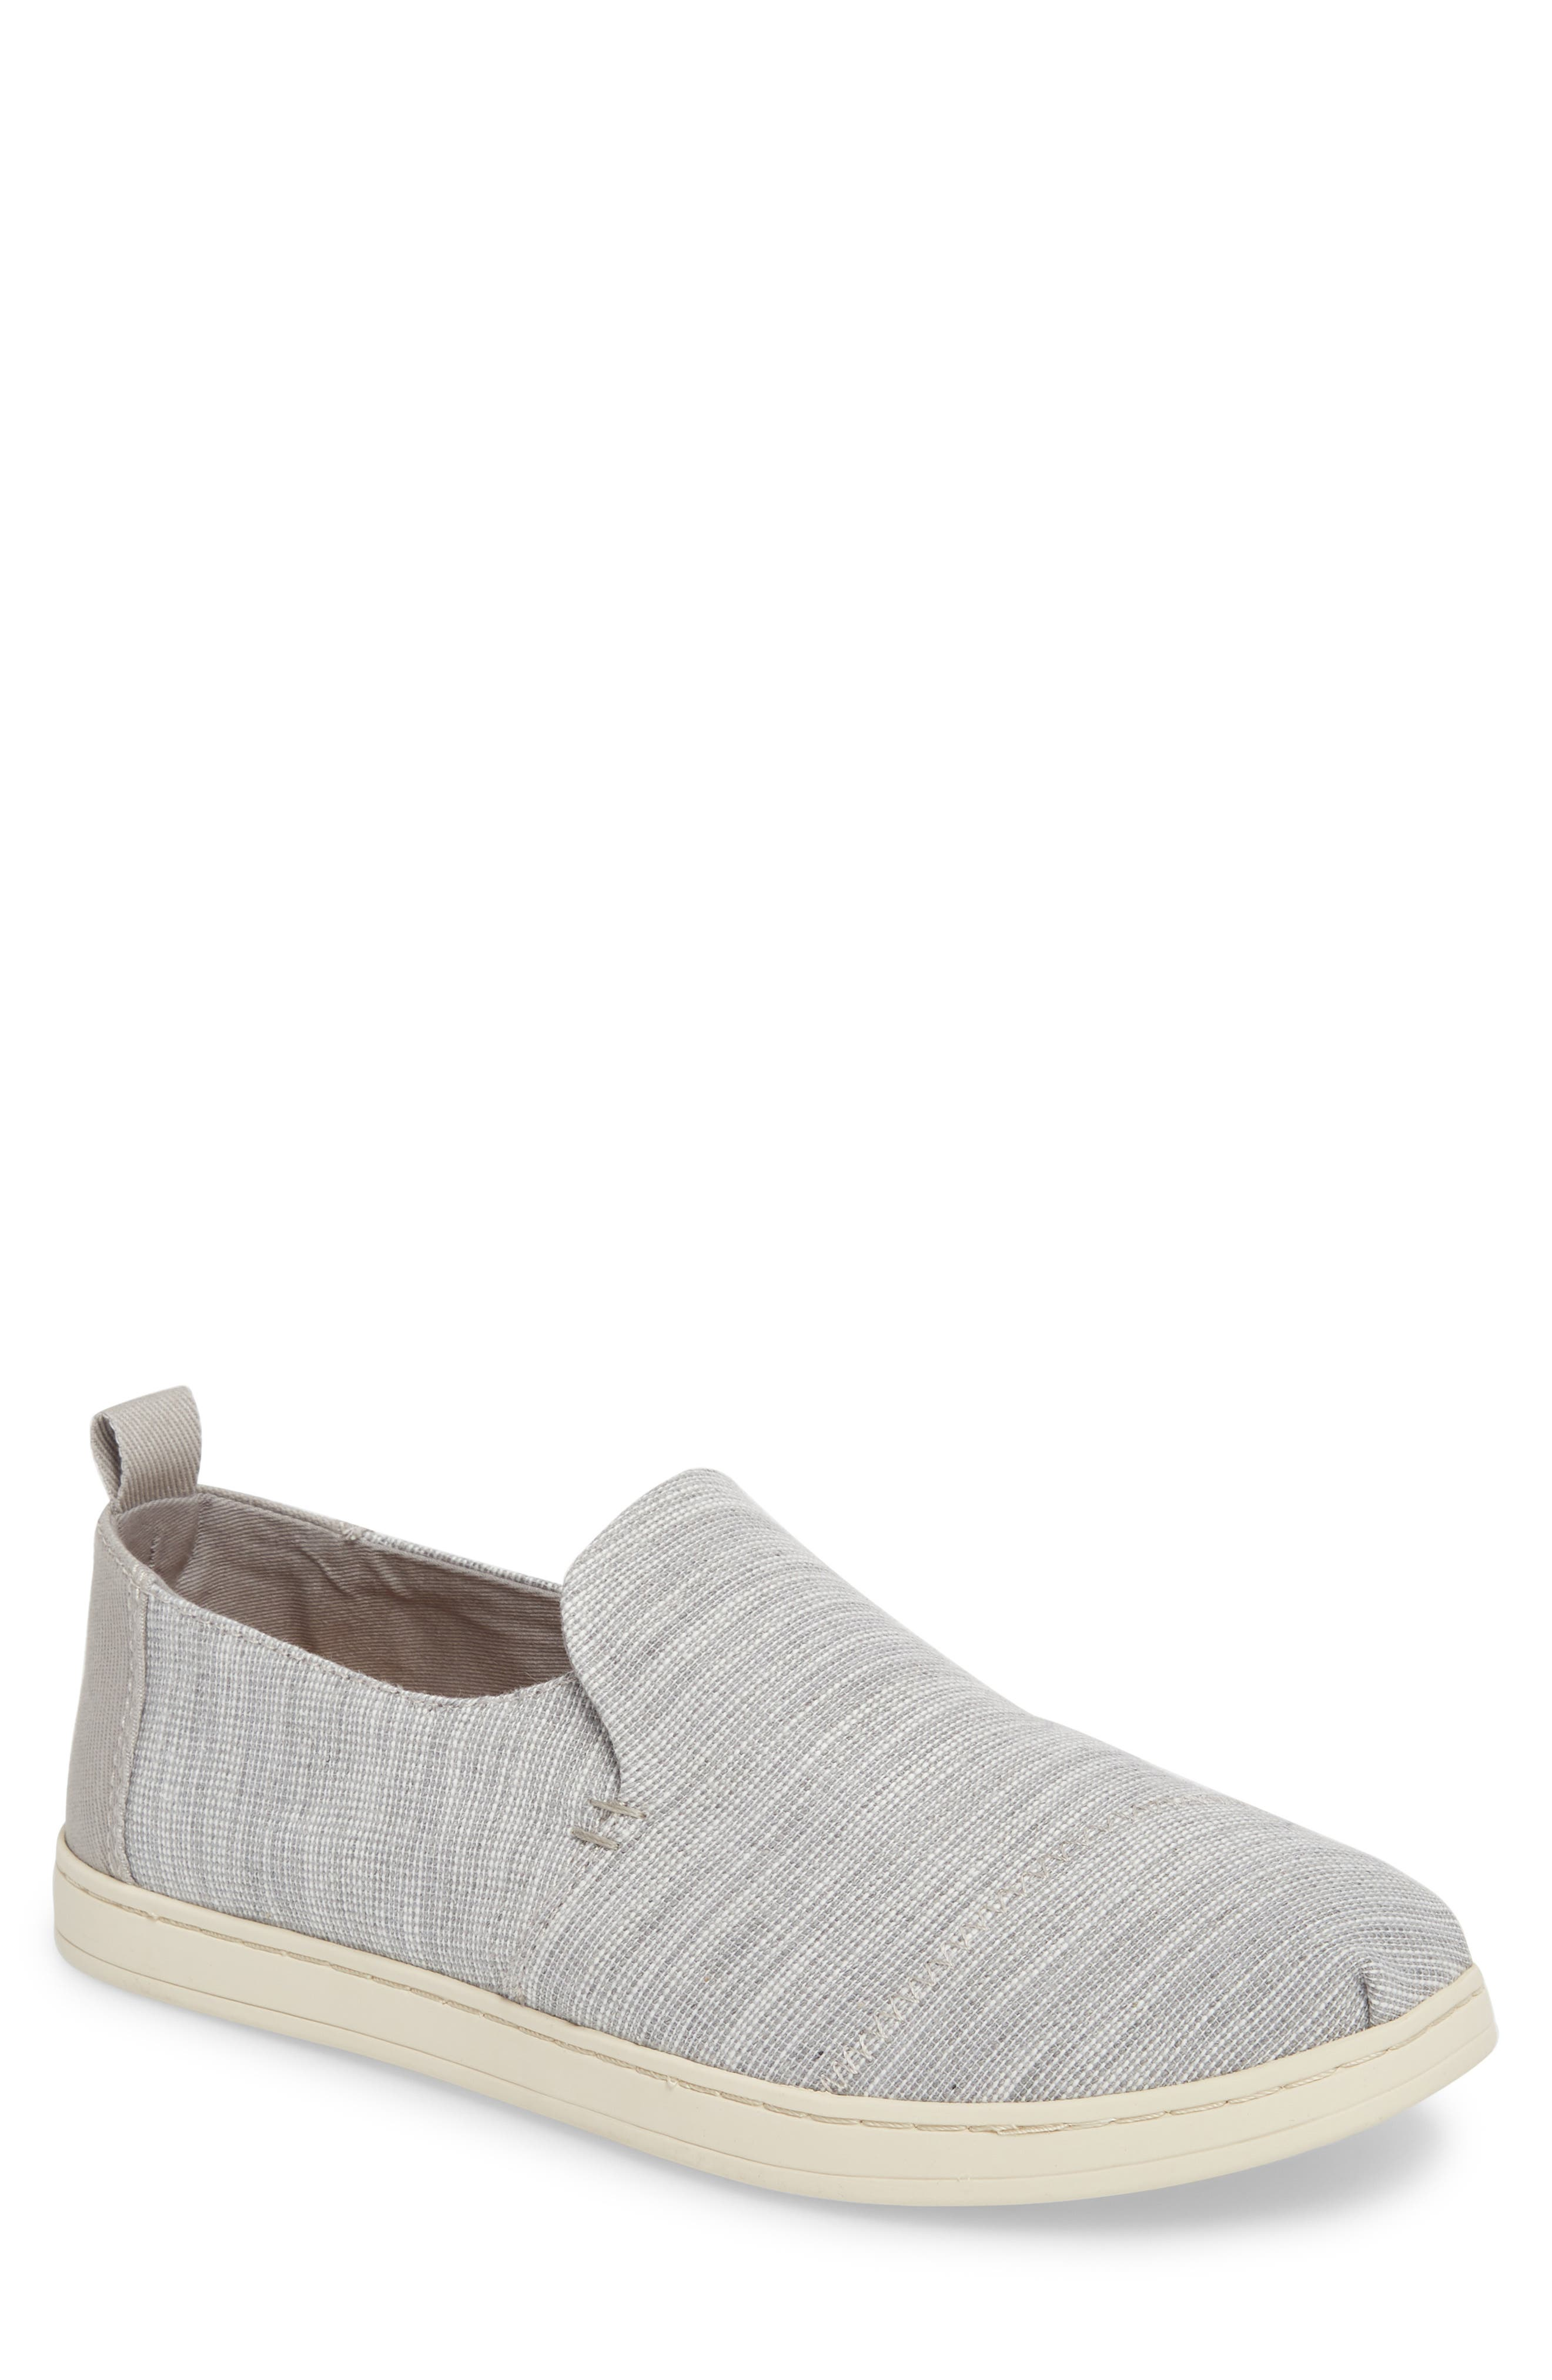 Deconstructed Alpargata Slip-On,                         Main,                         color, Drizzle Striped Chambray